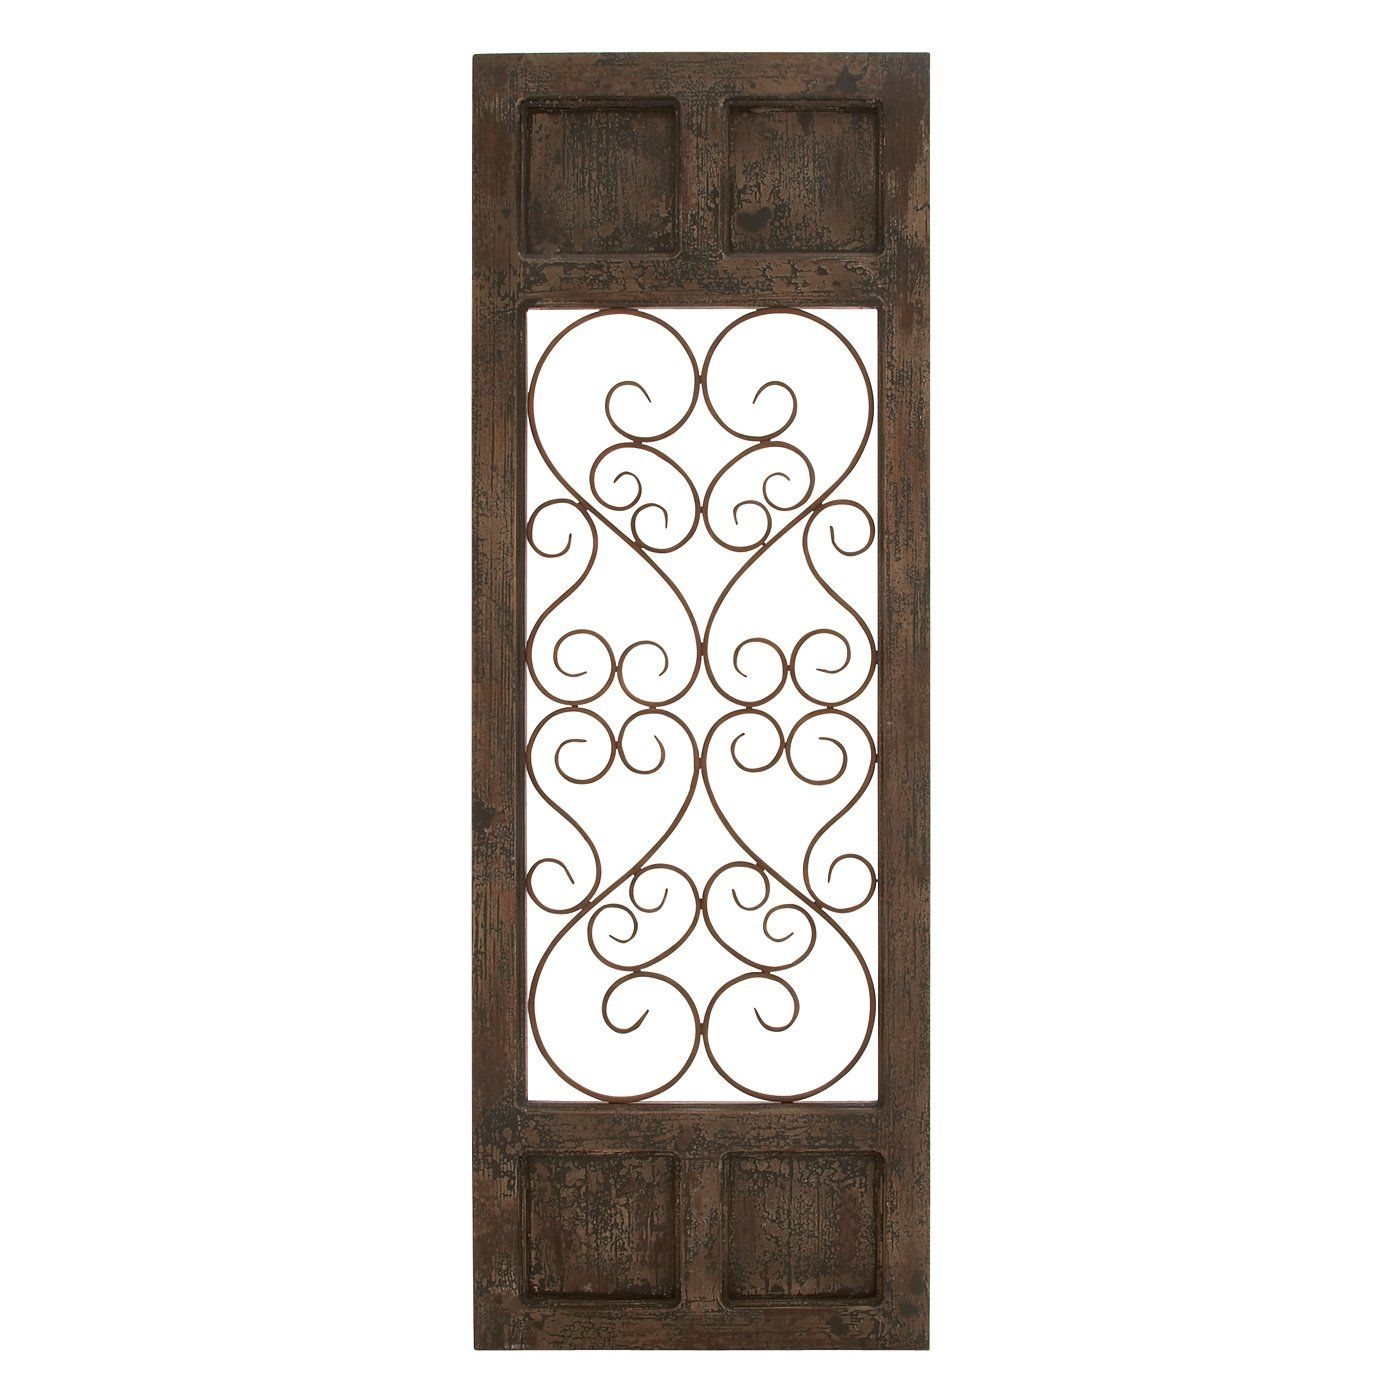 Kitchen metal wall decor - Woodland Imports 52792 Classic Metal And Wood Decorative Wall Panel Lowe S Canada